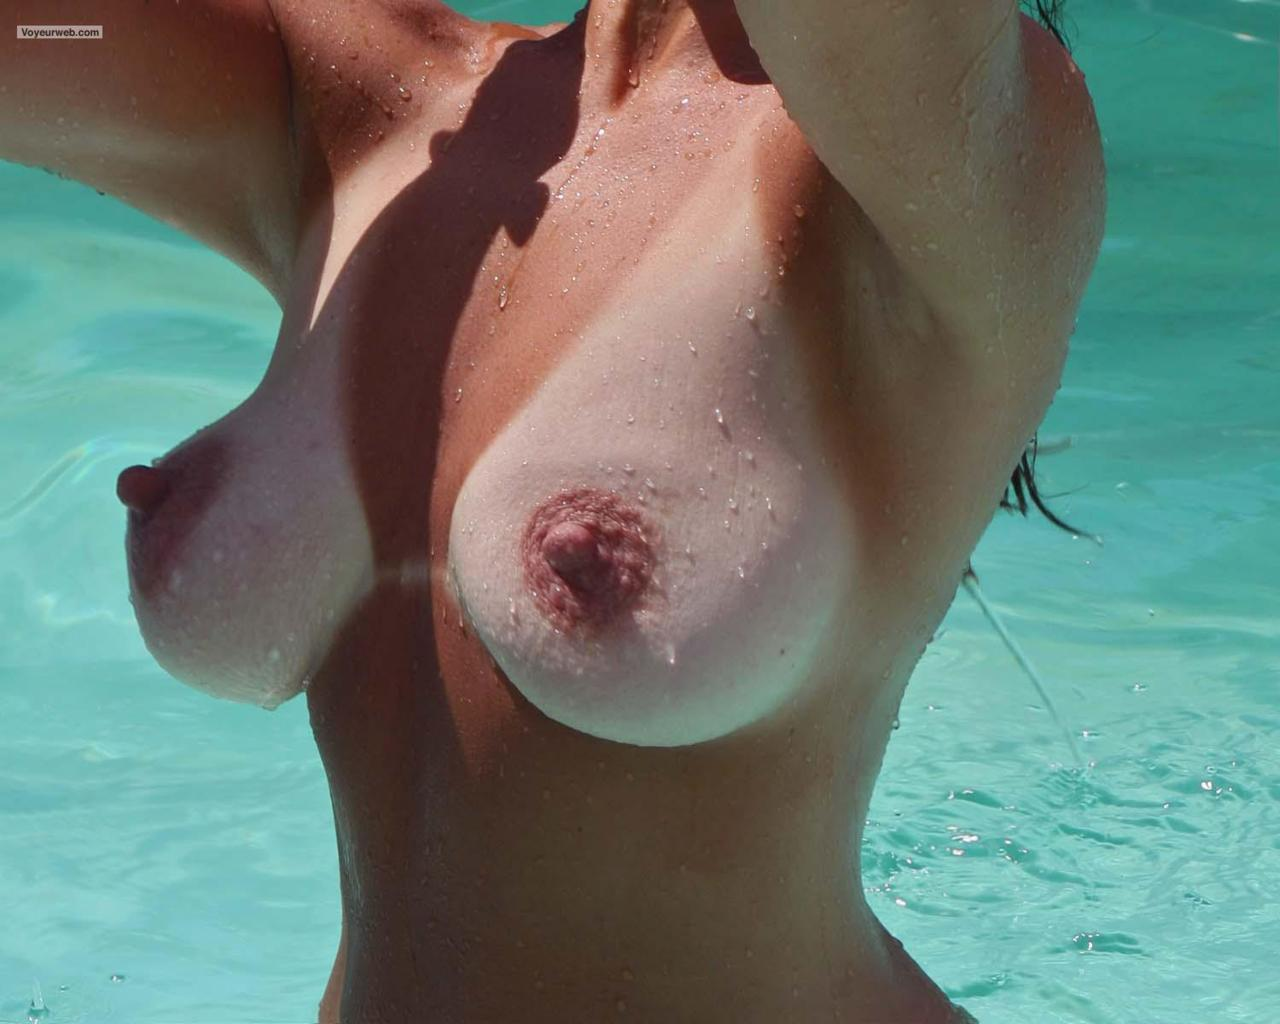 Conical Nipples Tumblr - Ig2FAP